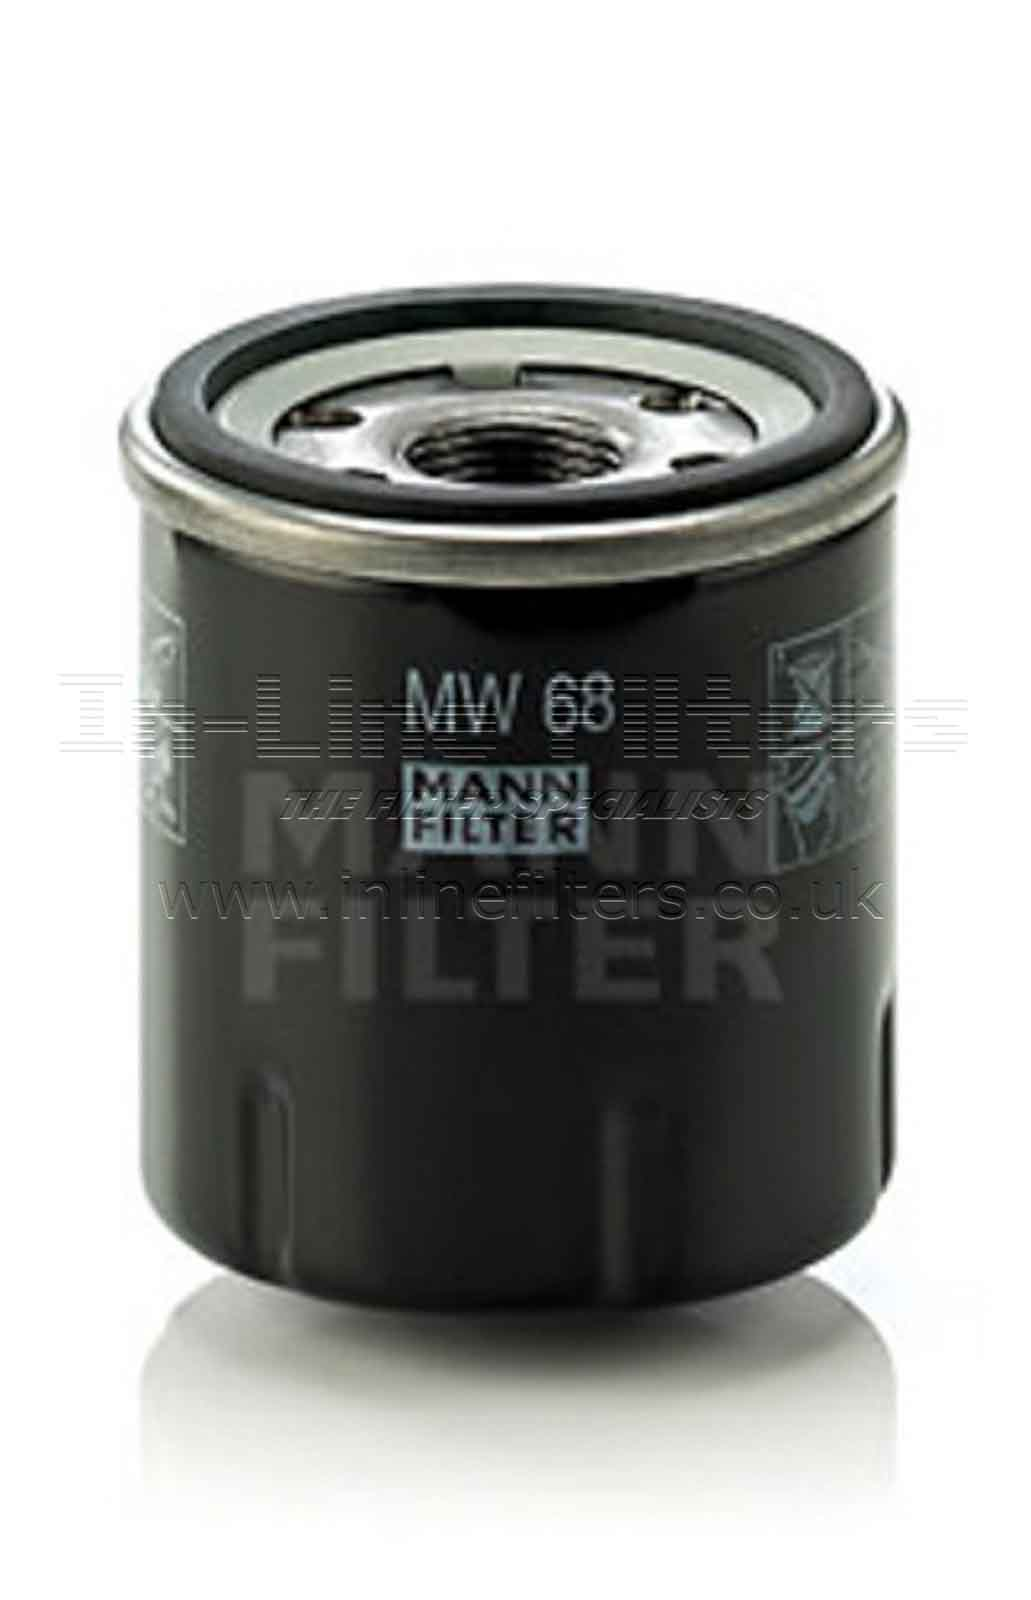 FMH-MW68 FILTER-Lube(Brand Specific-Mann MW68) - Click Image to Close